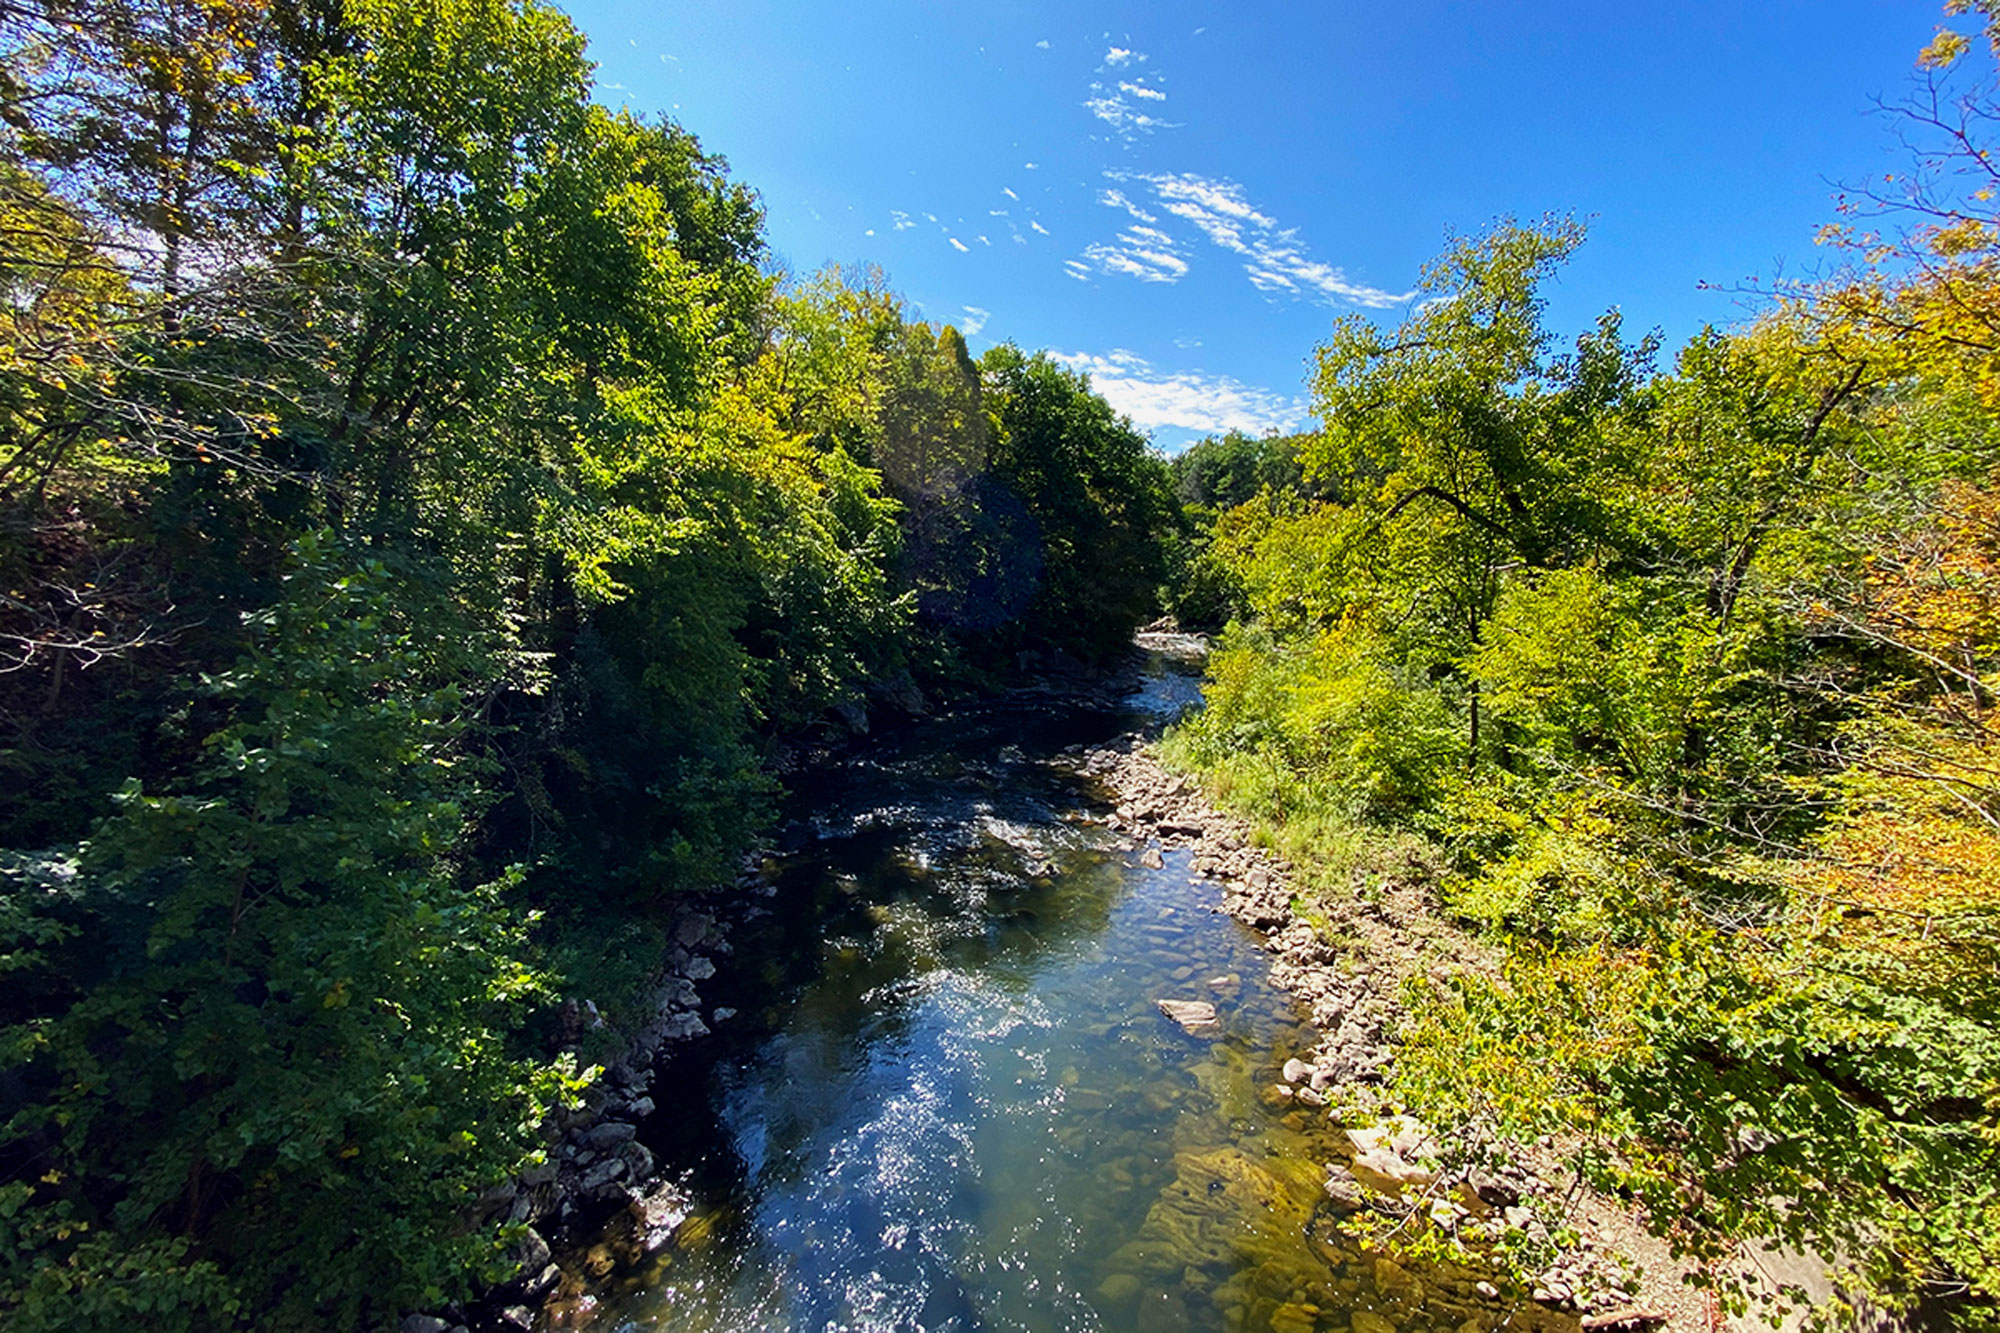 The Housatonic River, known for its quality fly fishing and kayaking, as seen from Bull's Bridge.   Credit: John Lepak